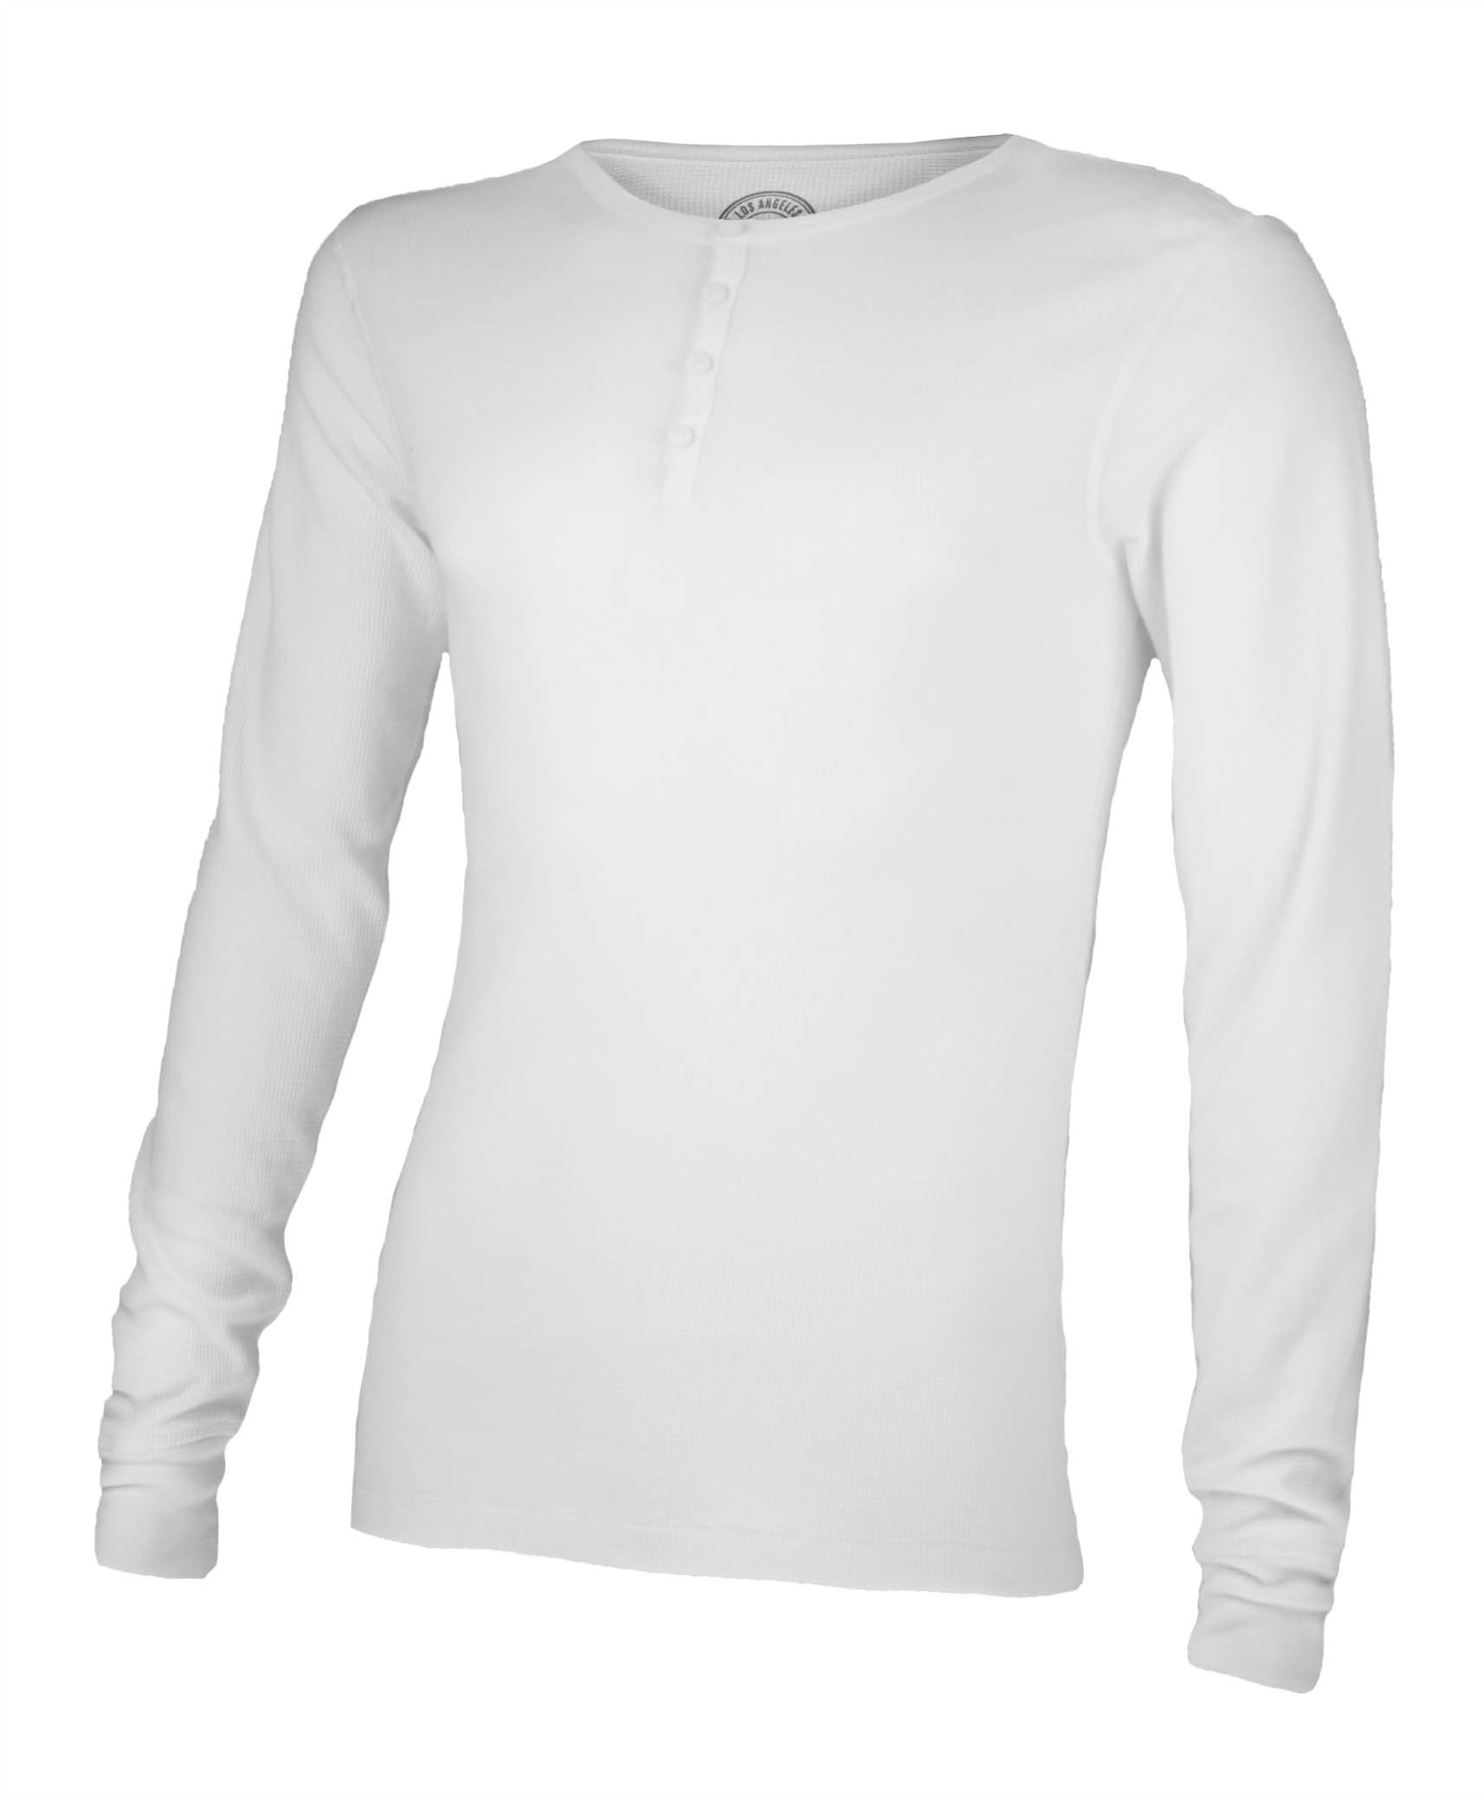 MENS LONG SLEEVE WAFFLE THERMAL BUTTON TOP SWEATSHIRT JERSEY T ...